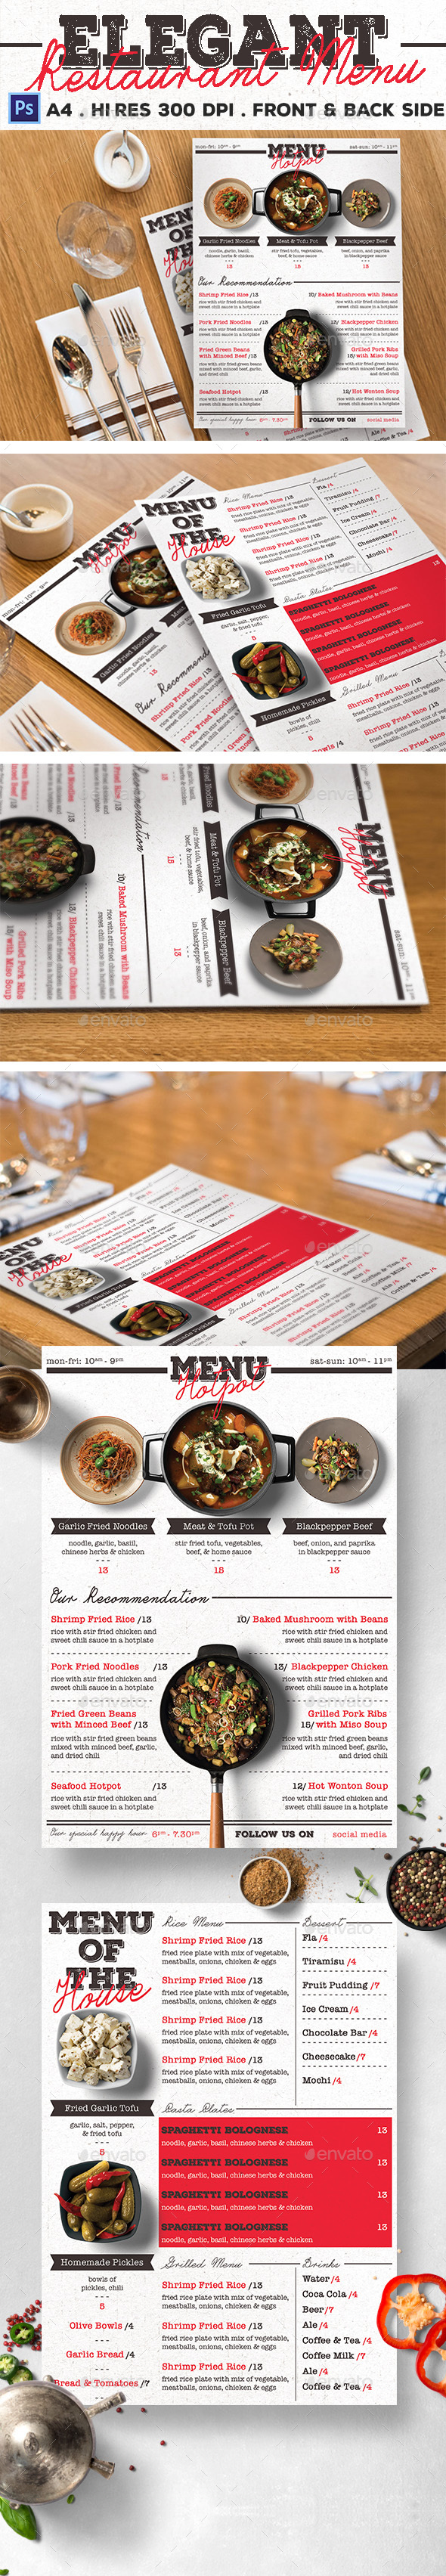 Elegant Restaurant Menu - Food Menus Print Templates